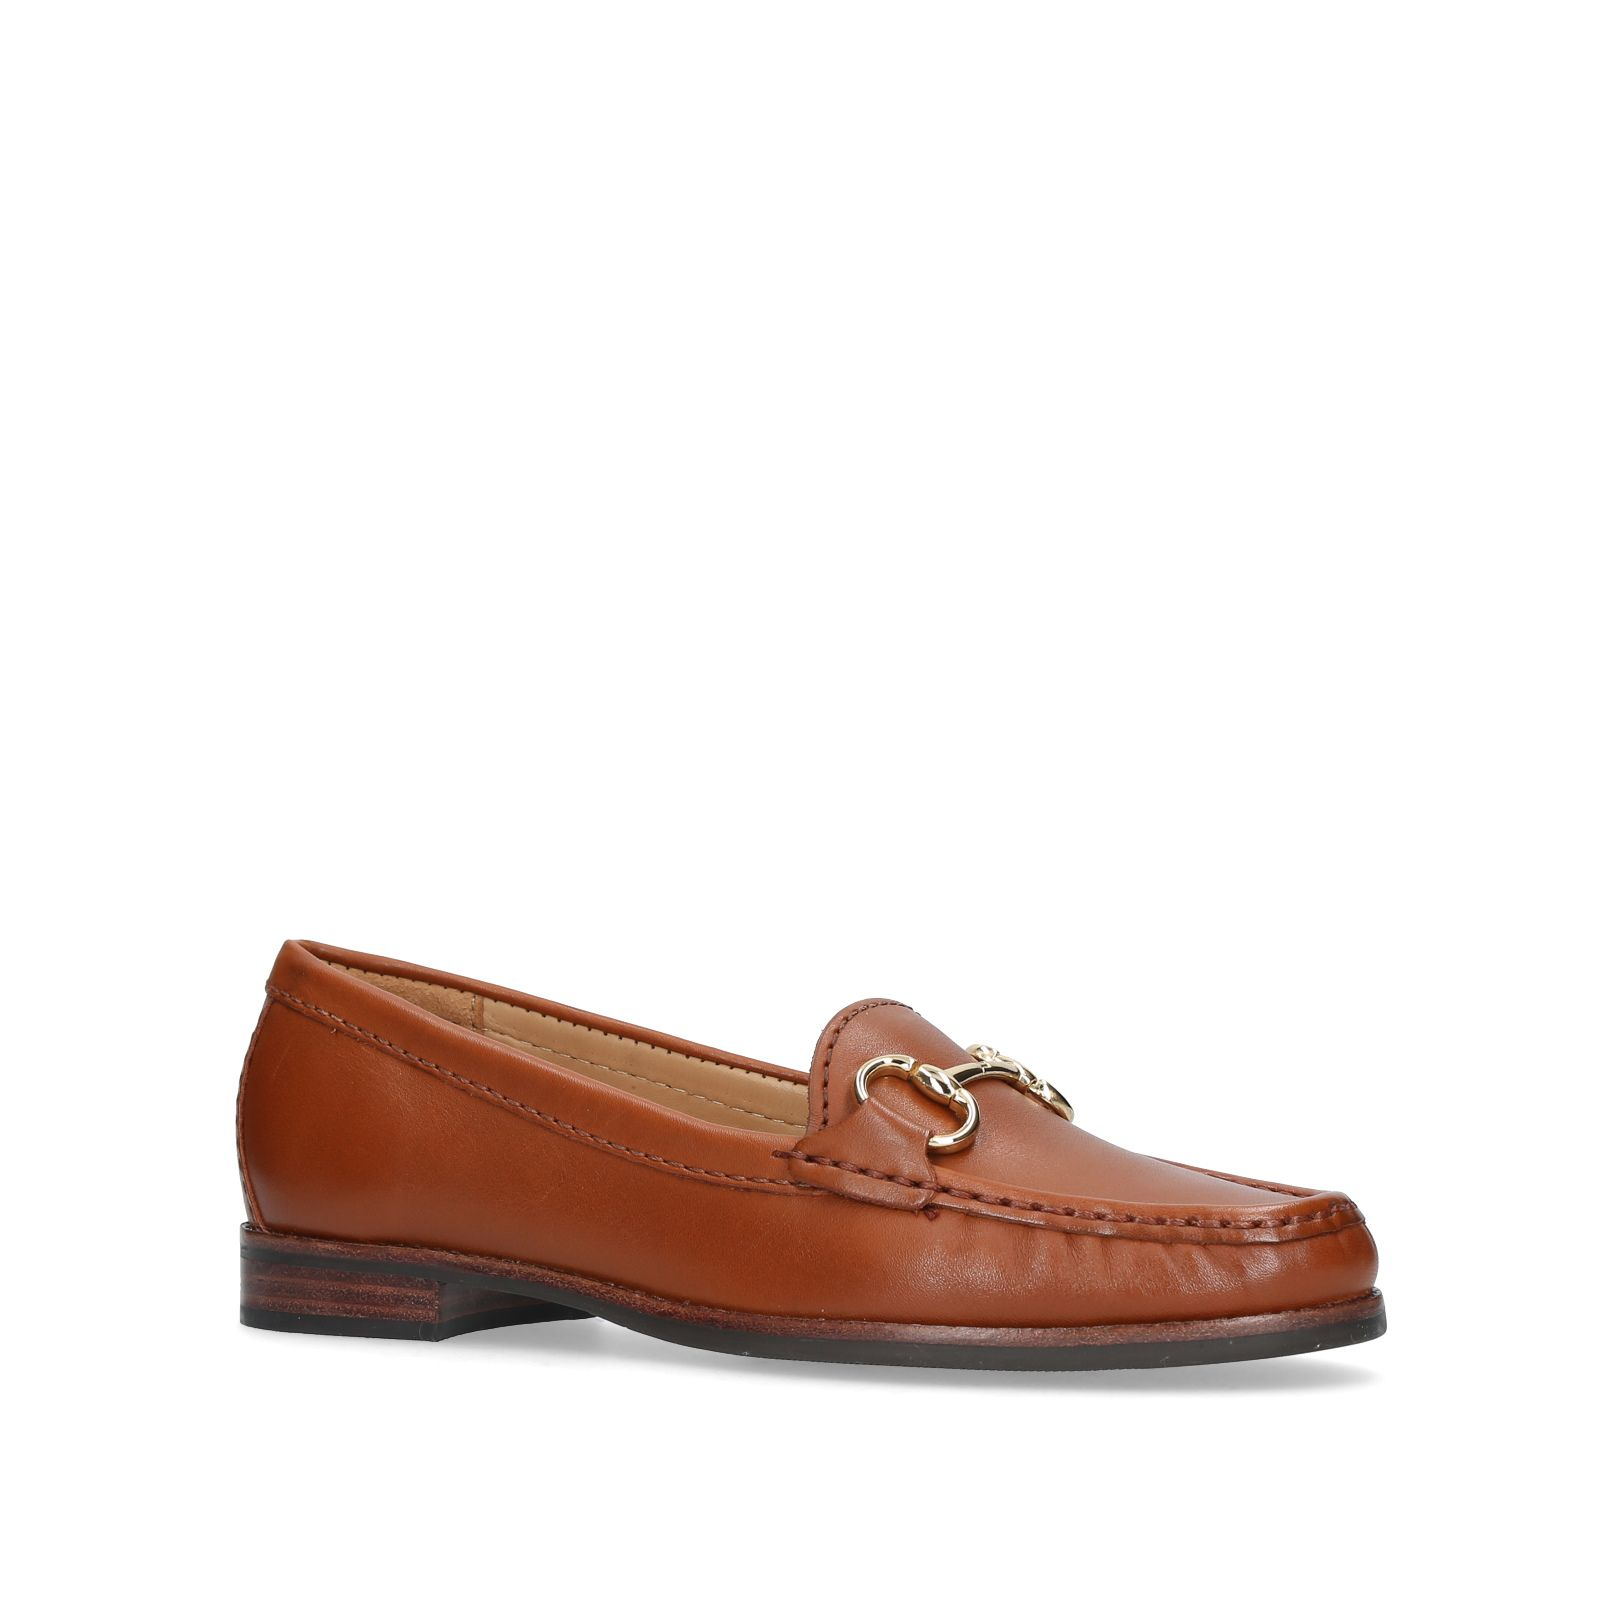 Carvela Comfort Click 2 loafers, Tan